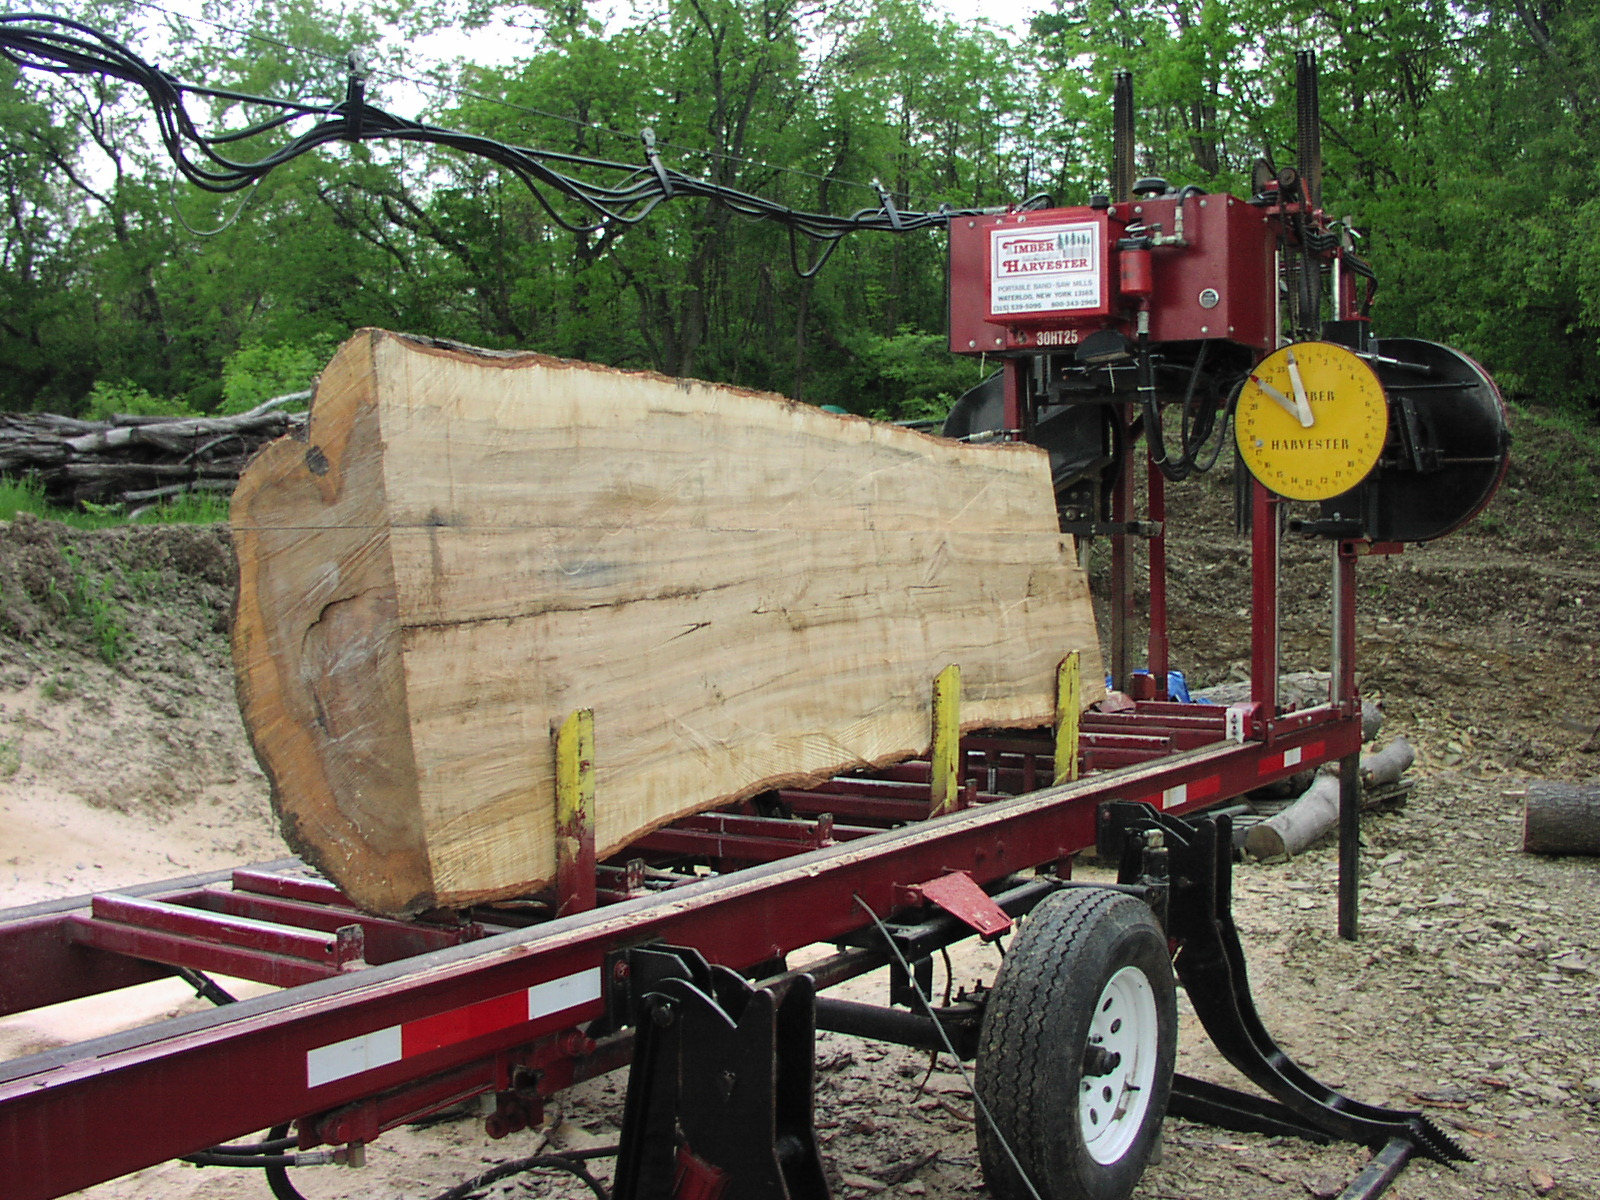 Wood Mizer Lt70 High Ion Portable Sawmill The Pinnacle Of Sawing Performance You